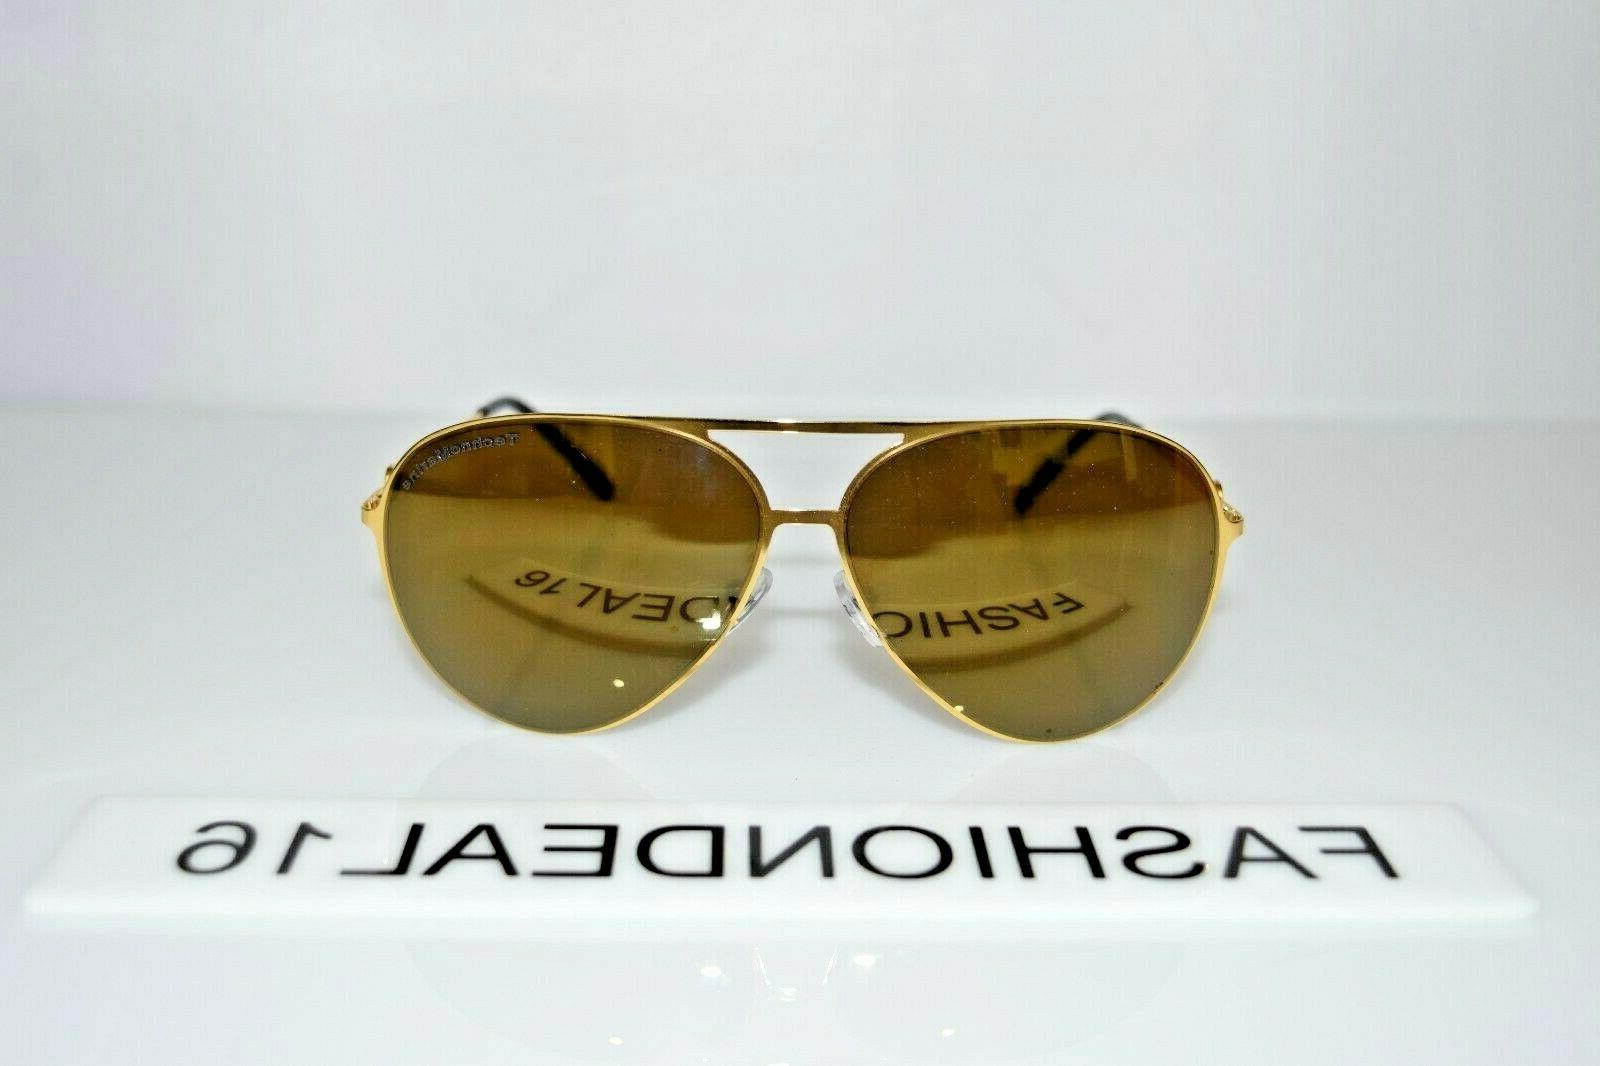 New Cruise Aviator Sunglasses